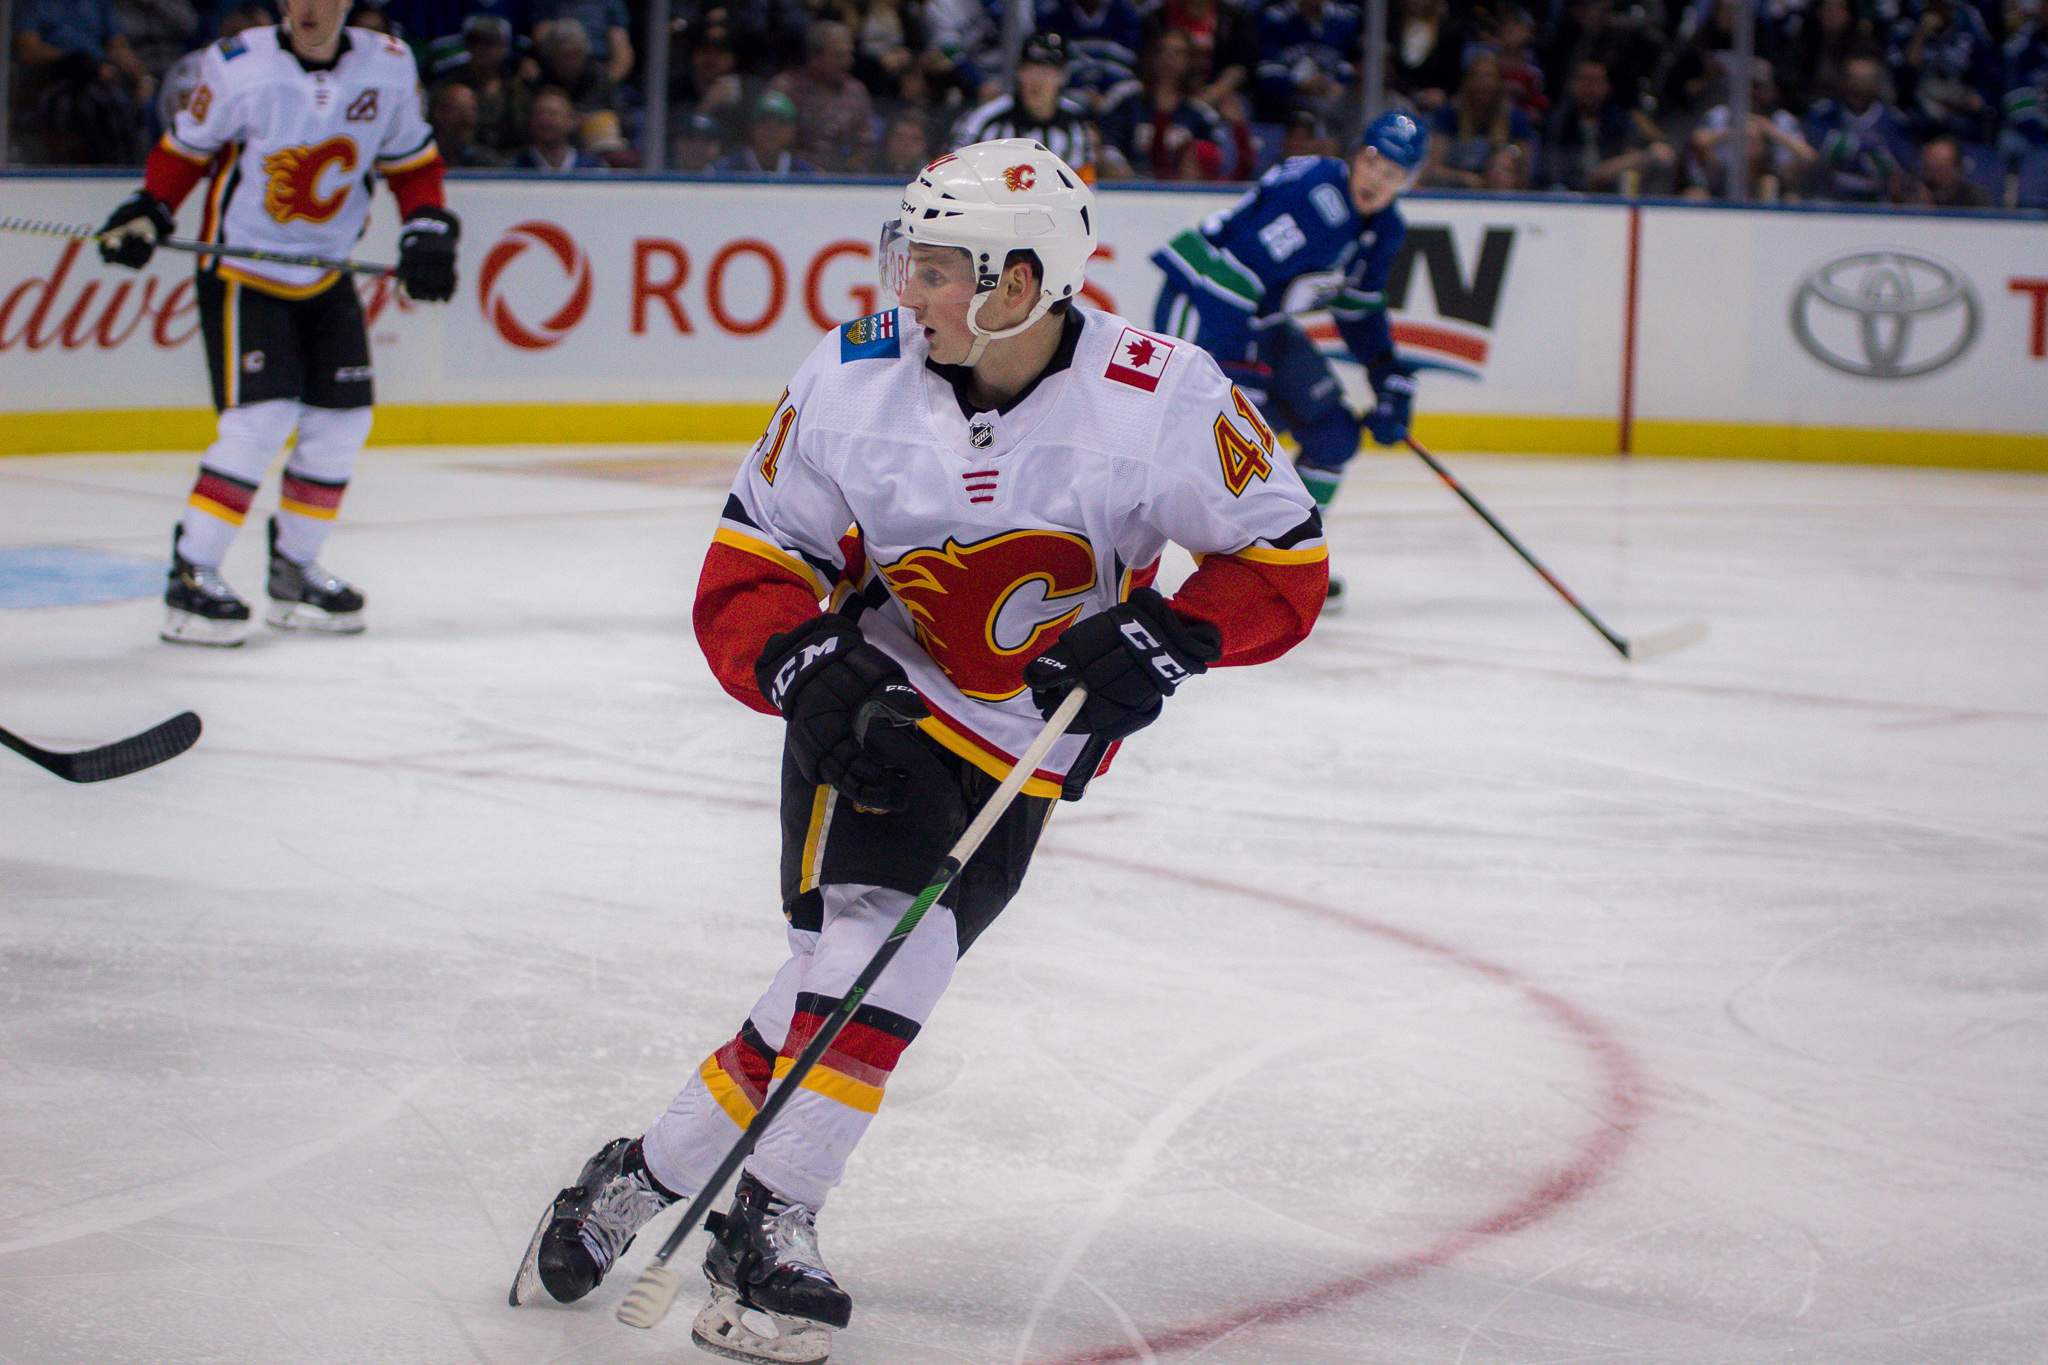 Former Royals captain Matthew Phillips playing in Victoria for the Flames. Photo by Nathanael Laranjeiras